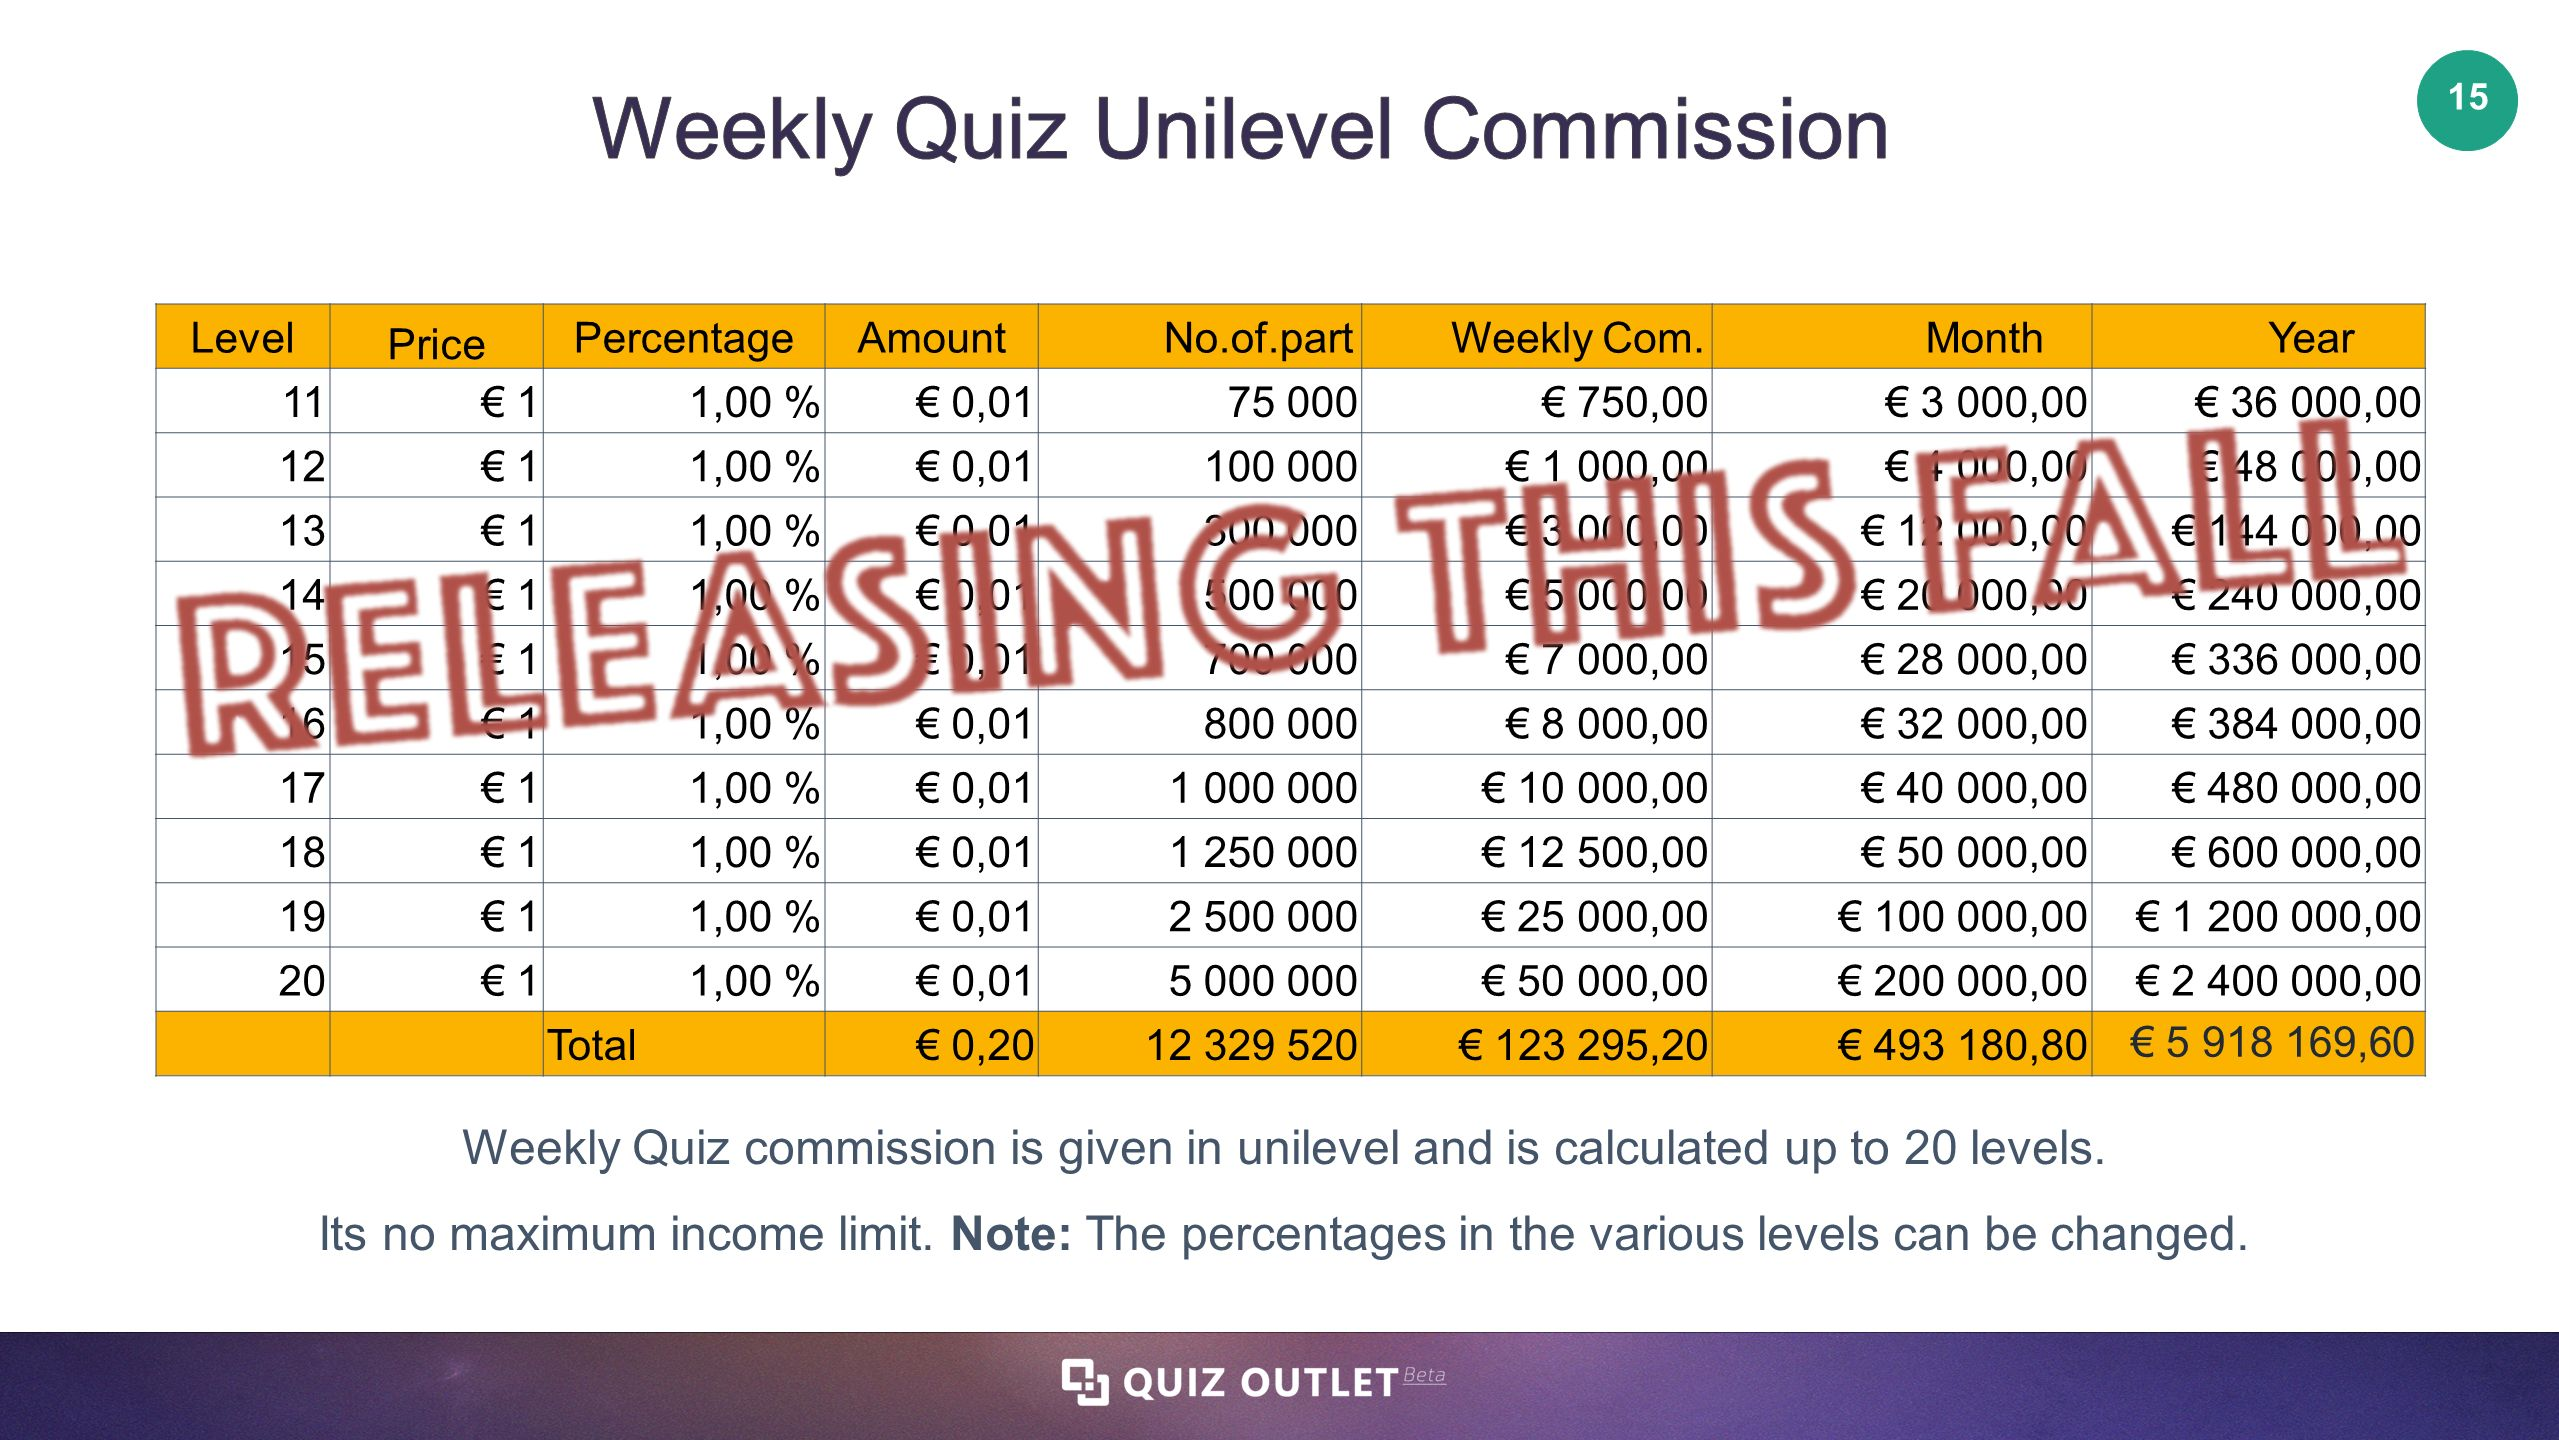 Weekly Quiz Unilevelmission How To Find Percentage